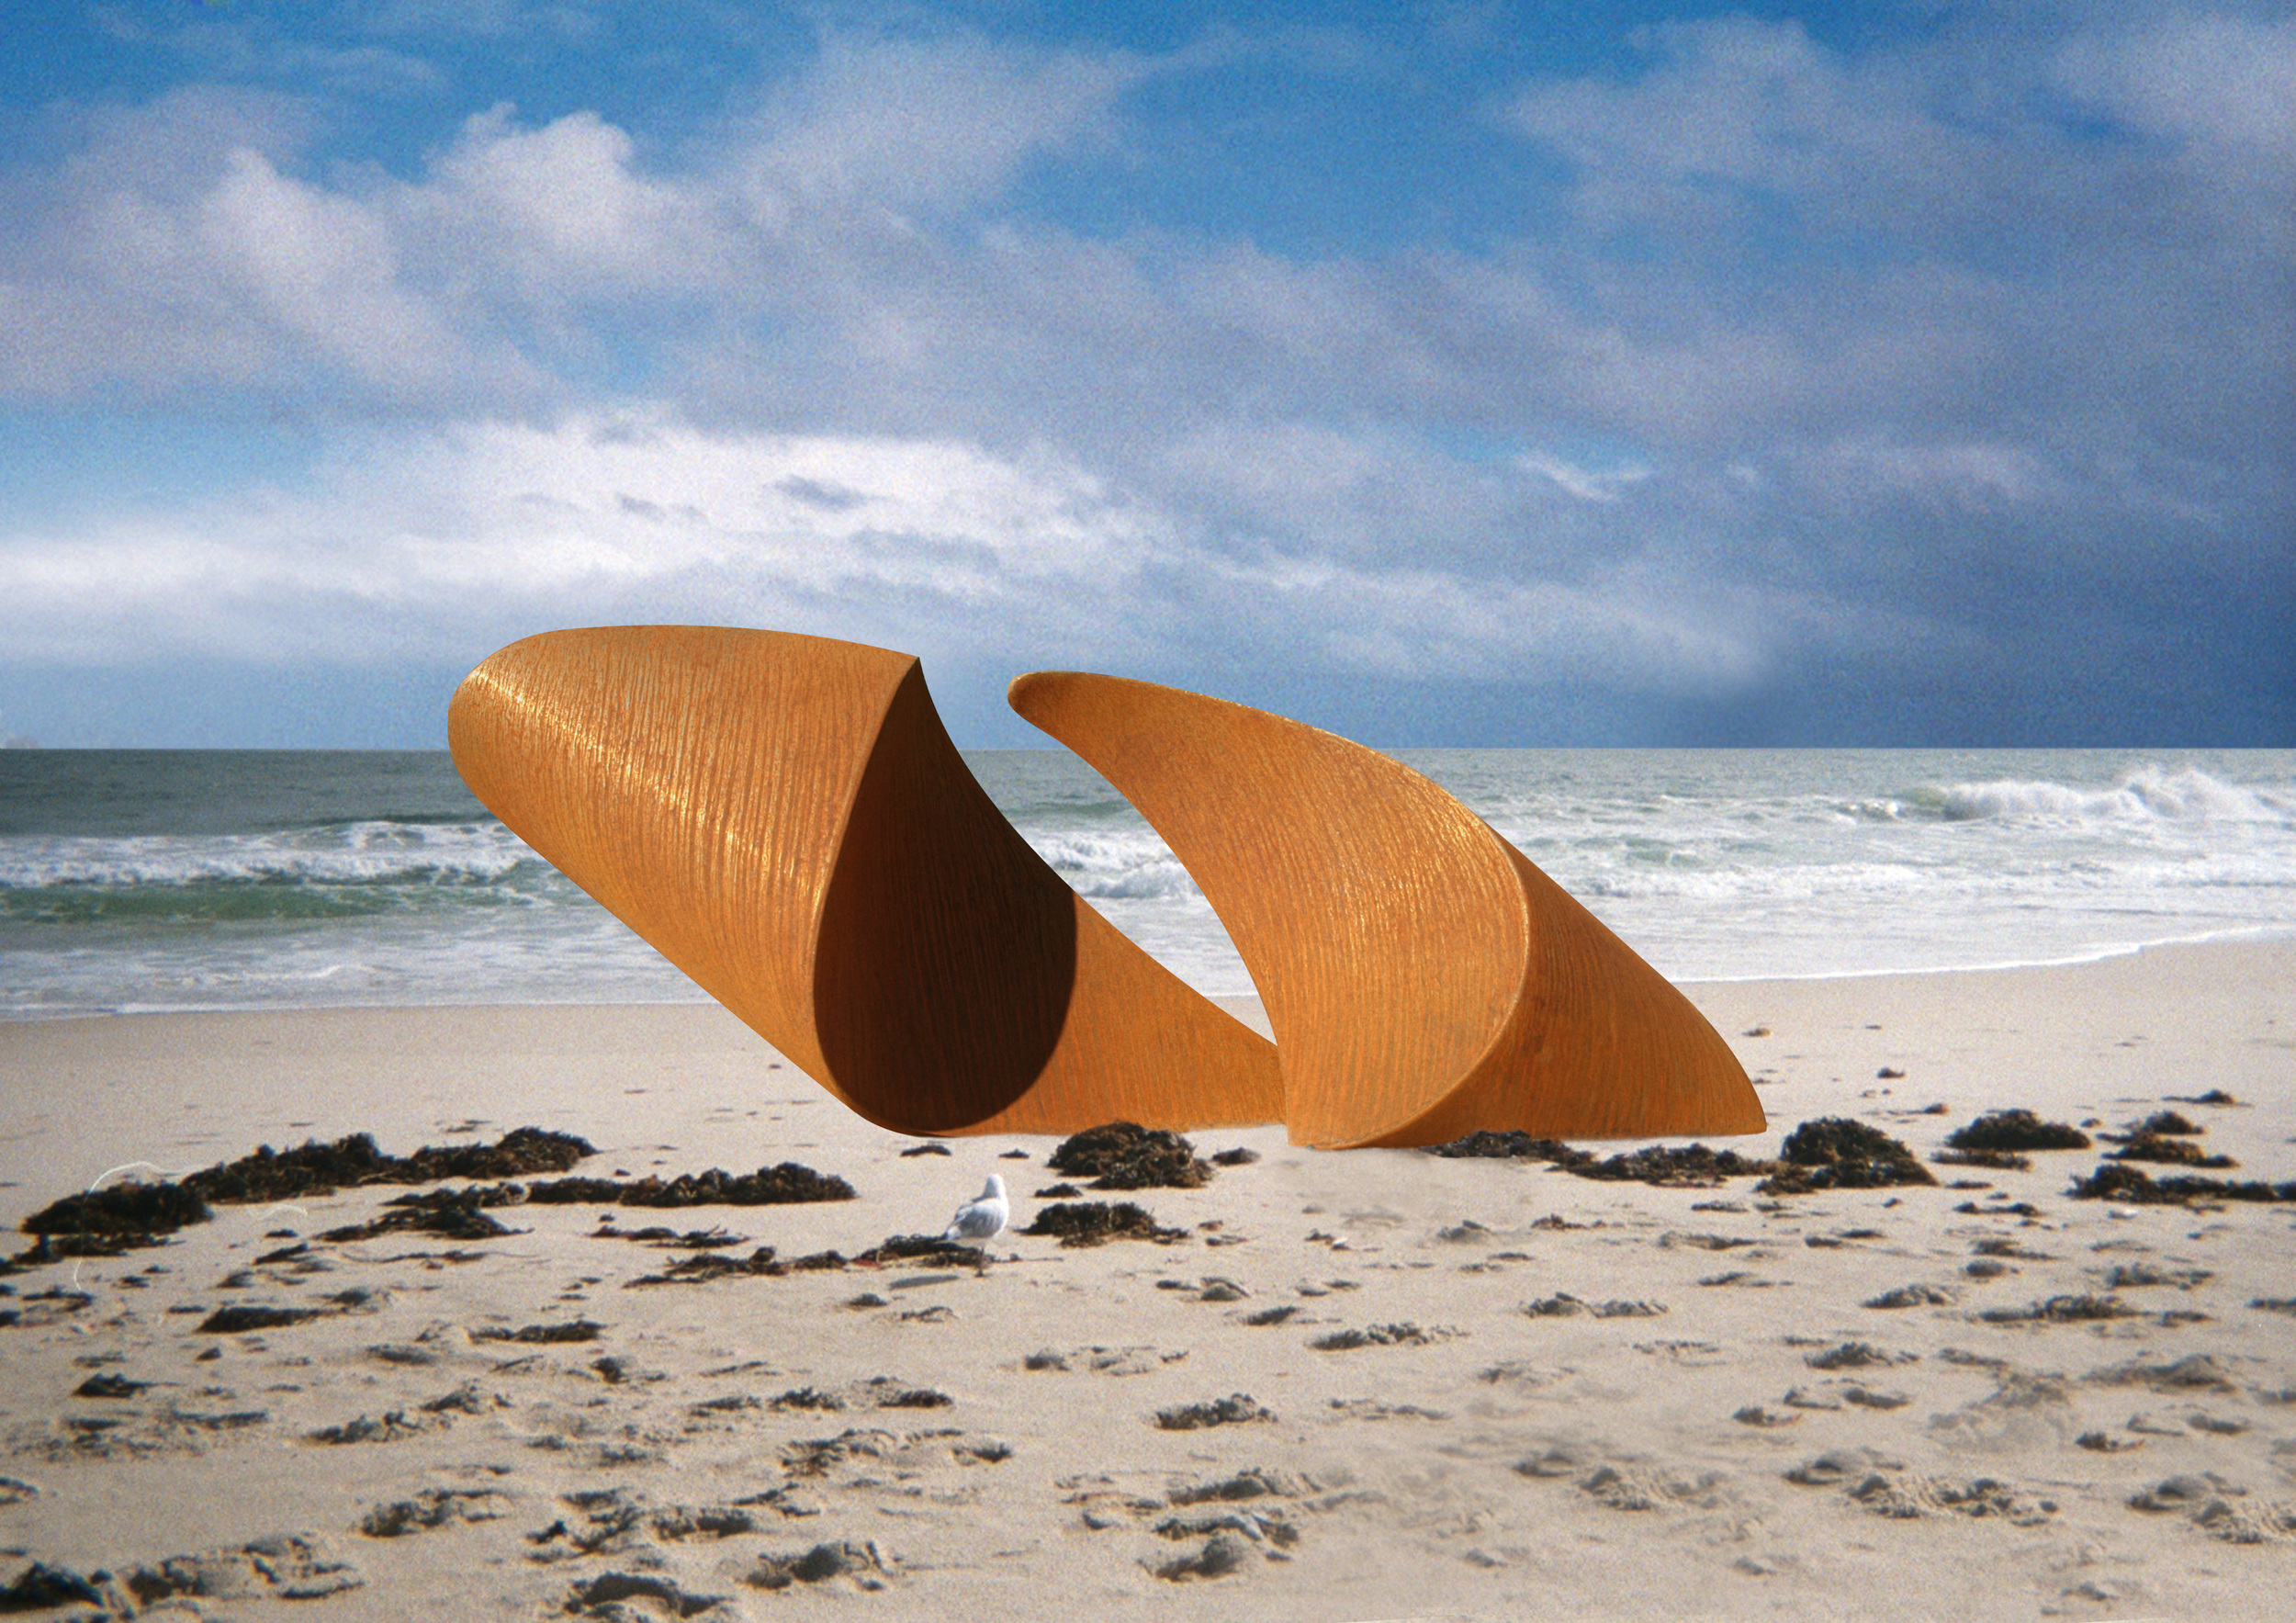 Draft marquette used to visualise full scale work for Sculpture by the Sea